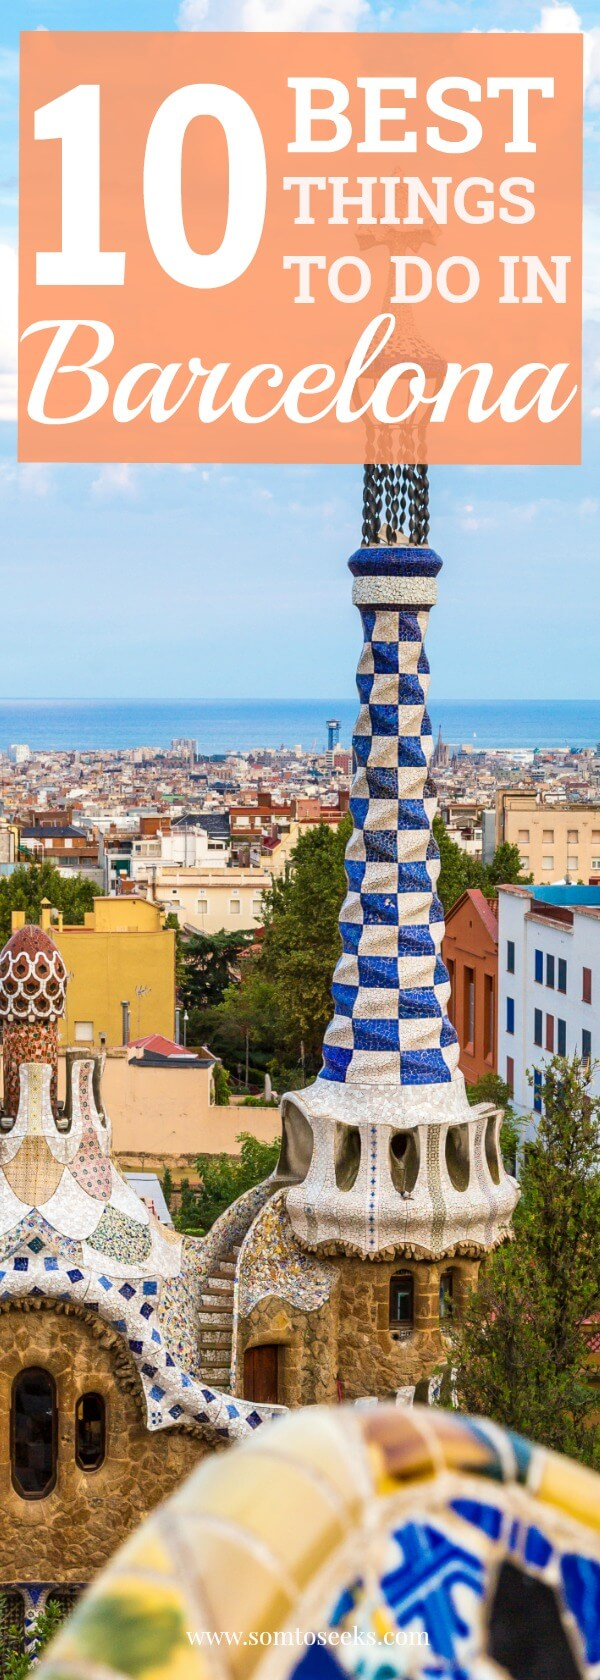 10 Best Things To Do in Barcelona - A Self Guided Walking Tour